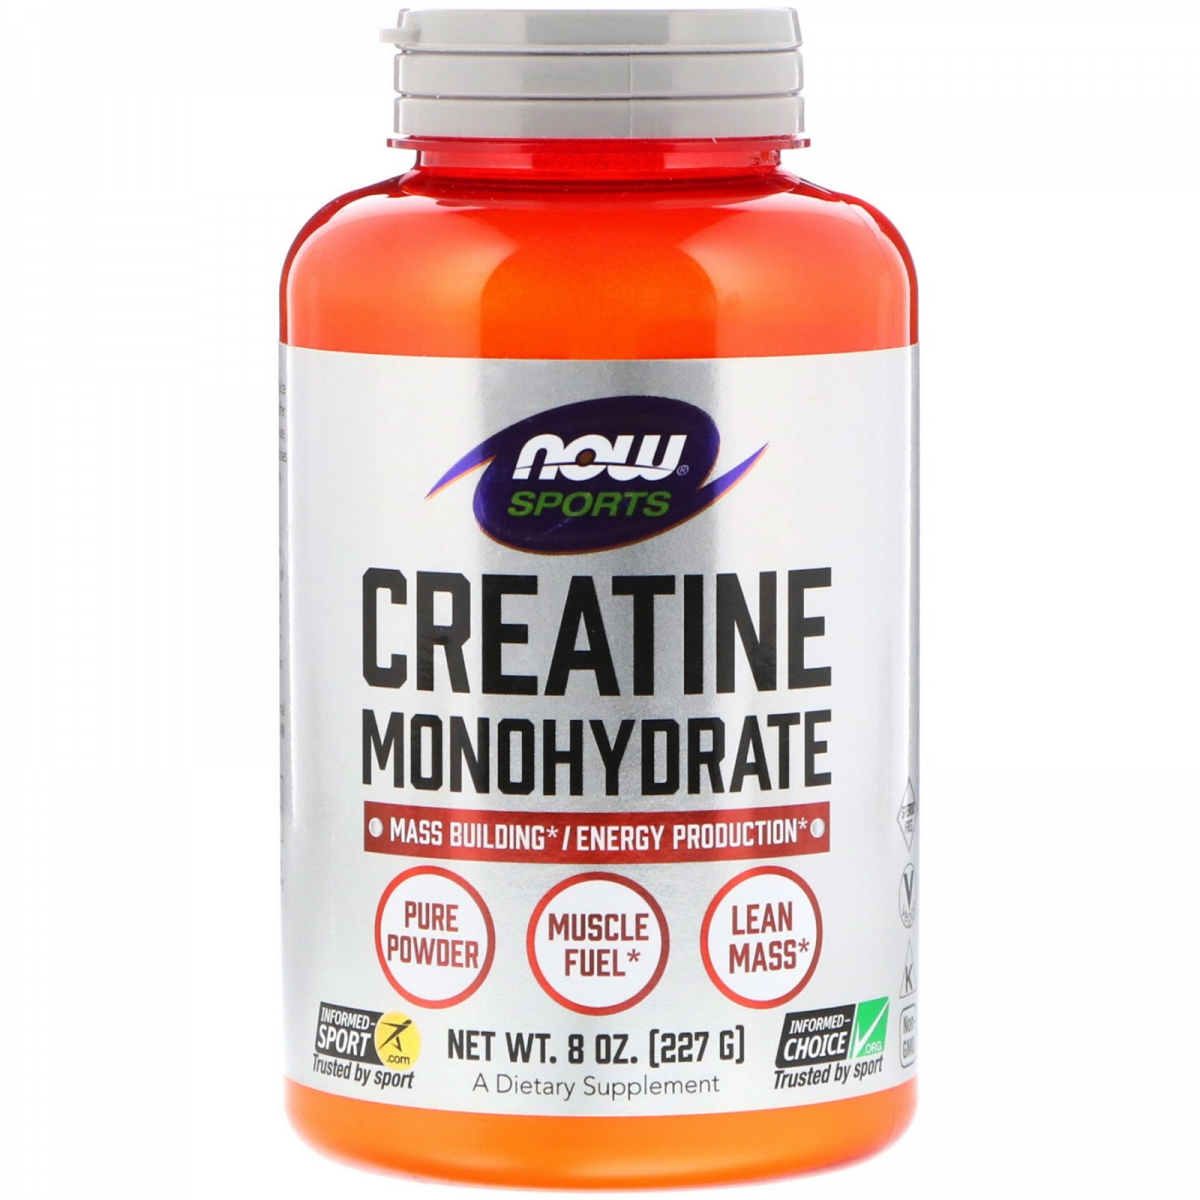 NOW Creatine Monohydrate Powder 227g